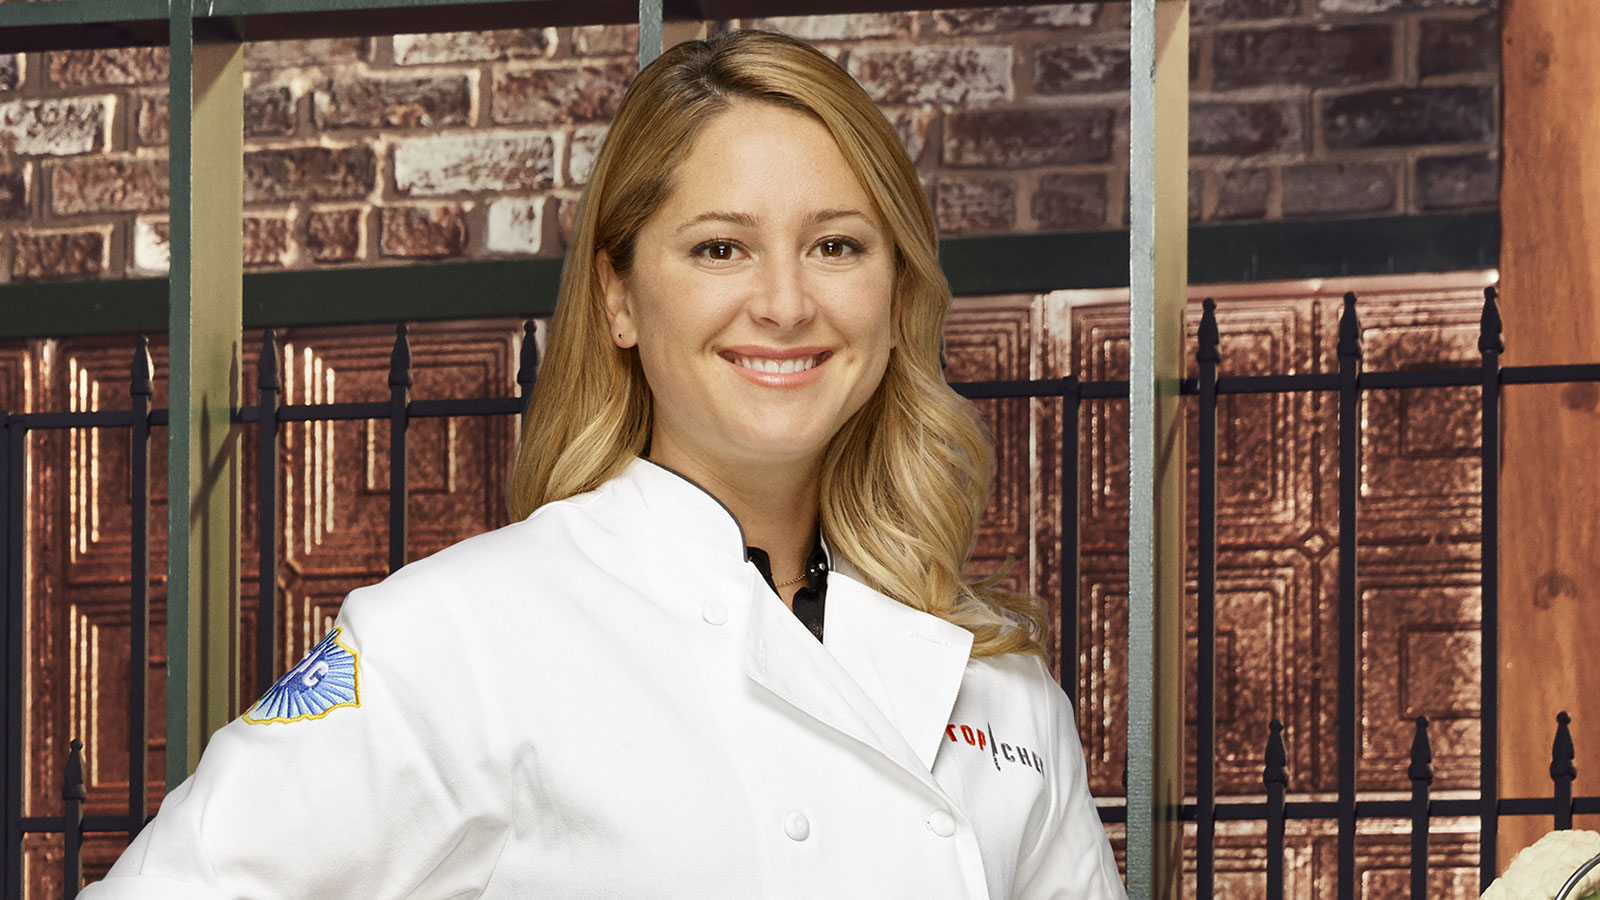 Supply Chain Analyst Resume Word Top Chef Winner Brooke Williamson On The Secret To Victory In  Help With Resumes Excel with Call Center Supervisor Resume Word Top Chef Winner Brooke Williamson On The Secret To Victory In Your Career   Ladders Marketing Project Manager Resume Excel